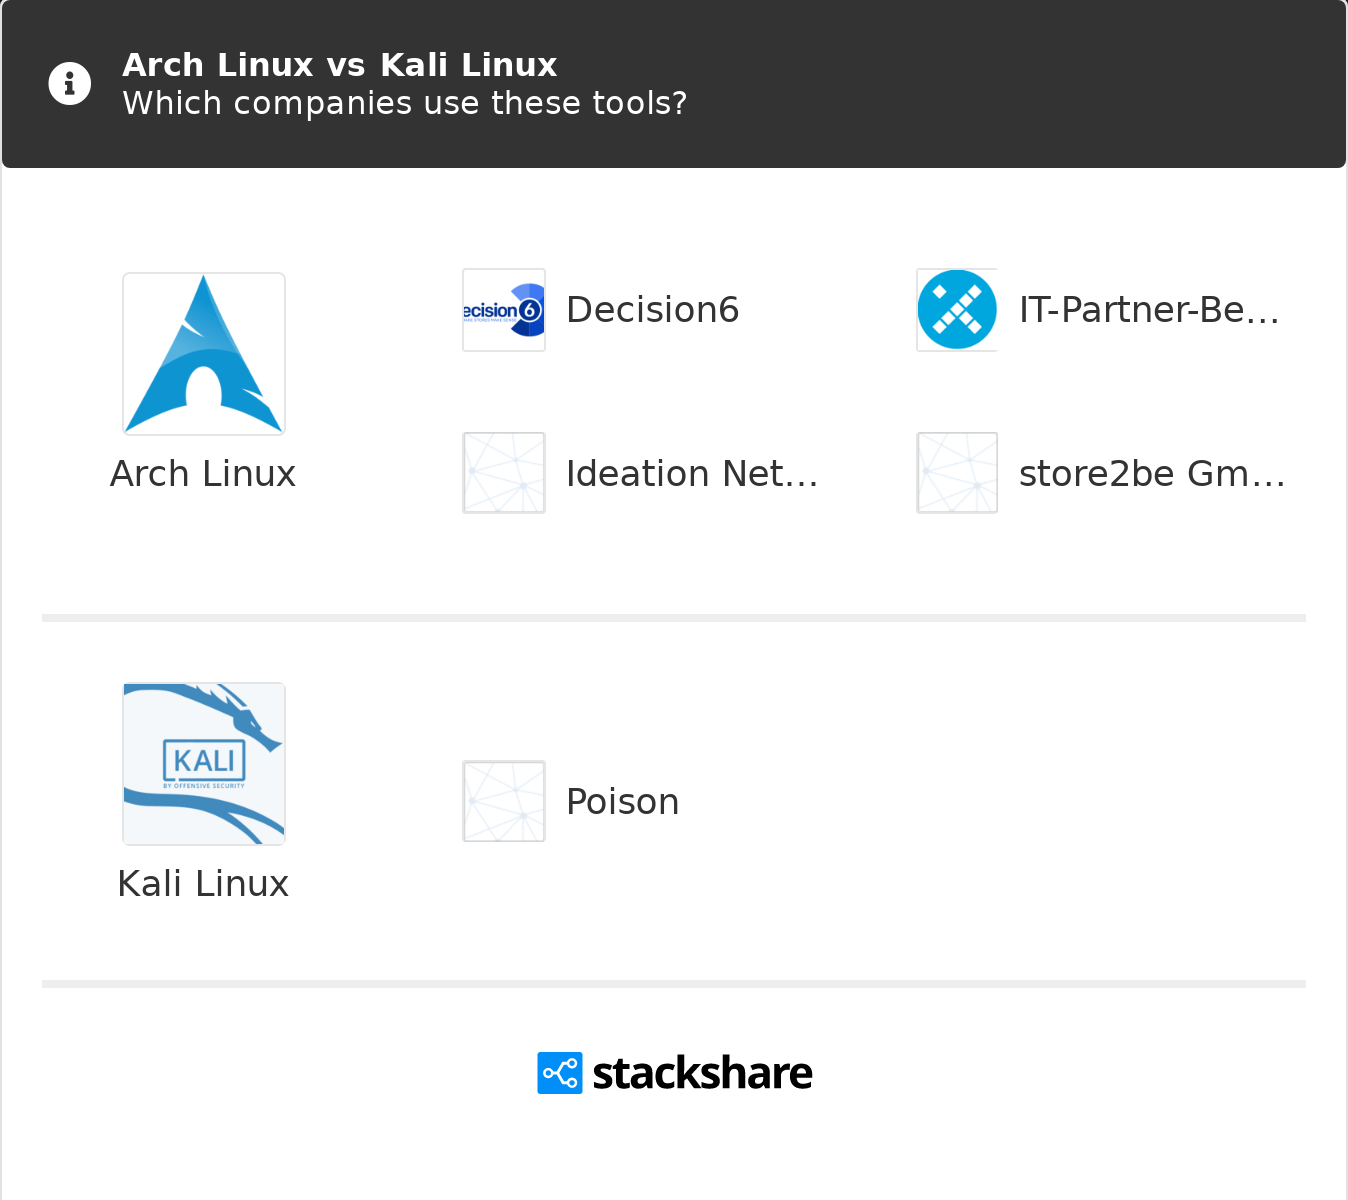 Arch Linux Vs Kali Linux What Are The Differences